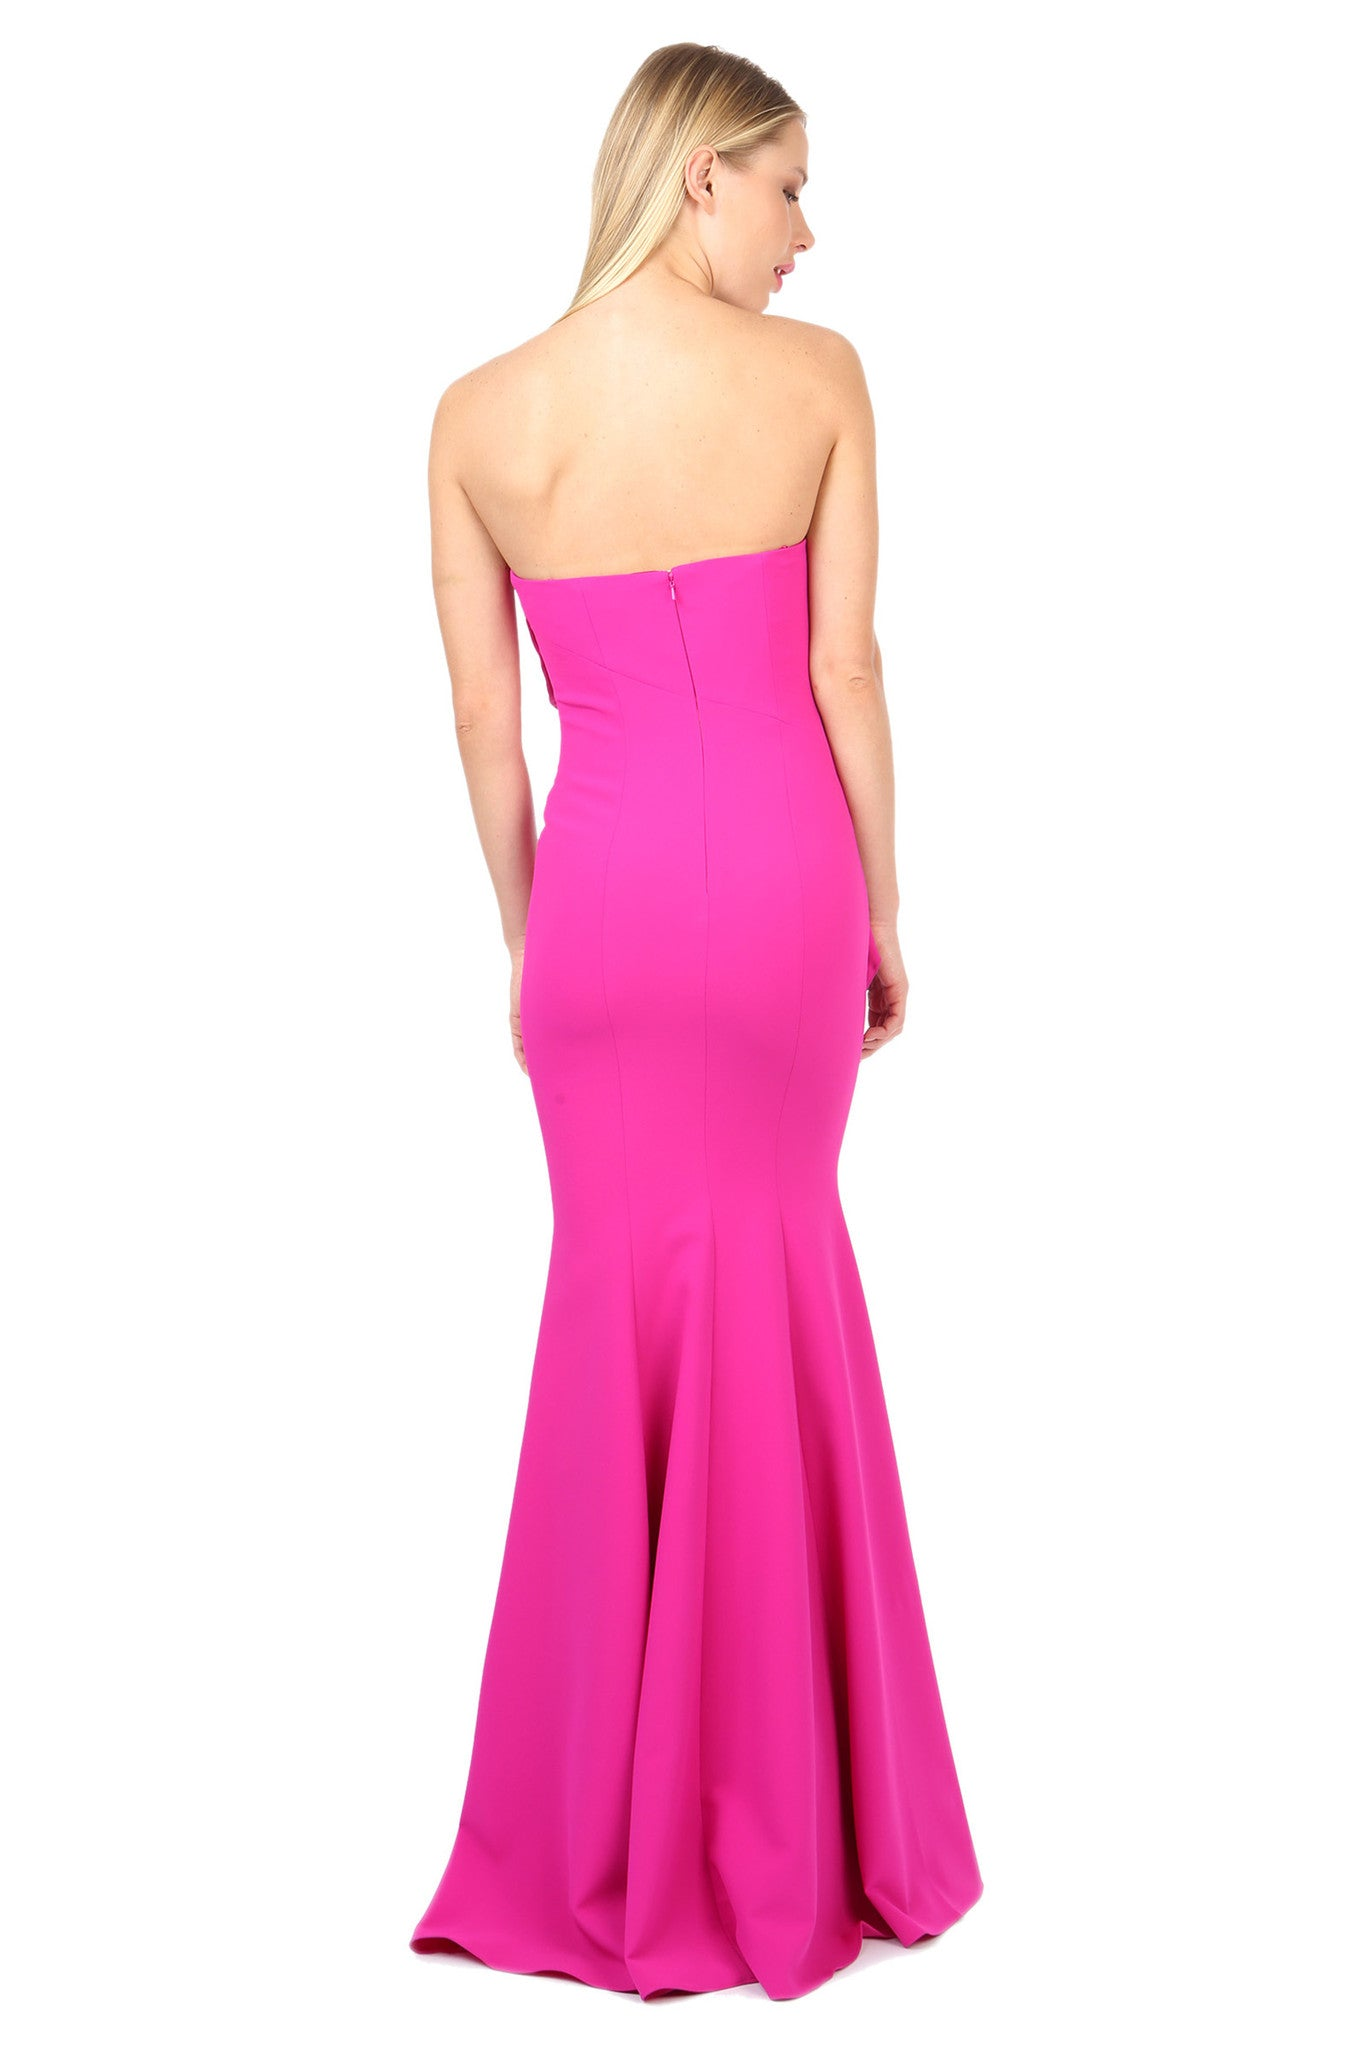 Jay Godfrey Fuchsia Strapless Ruffle Gown - Back View